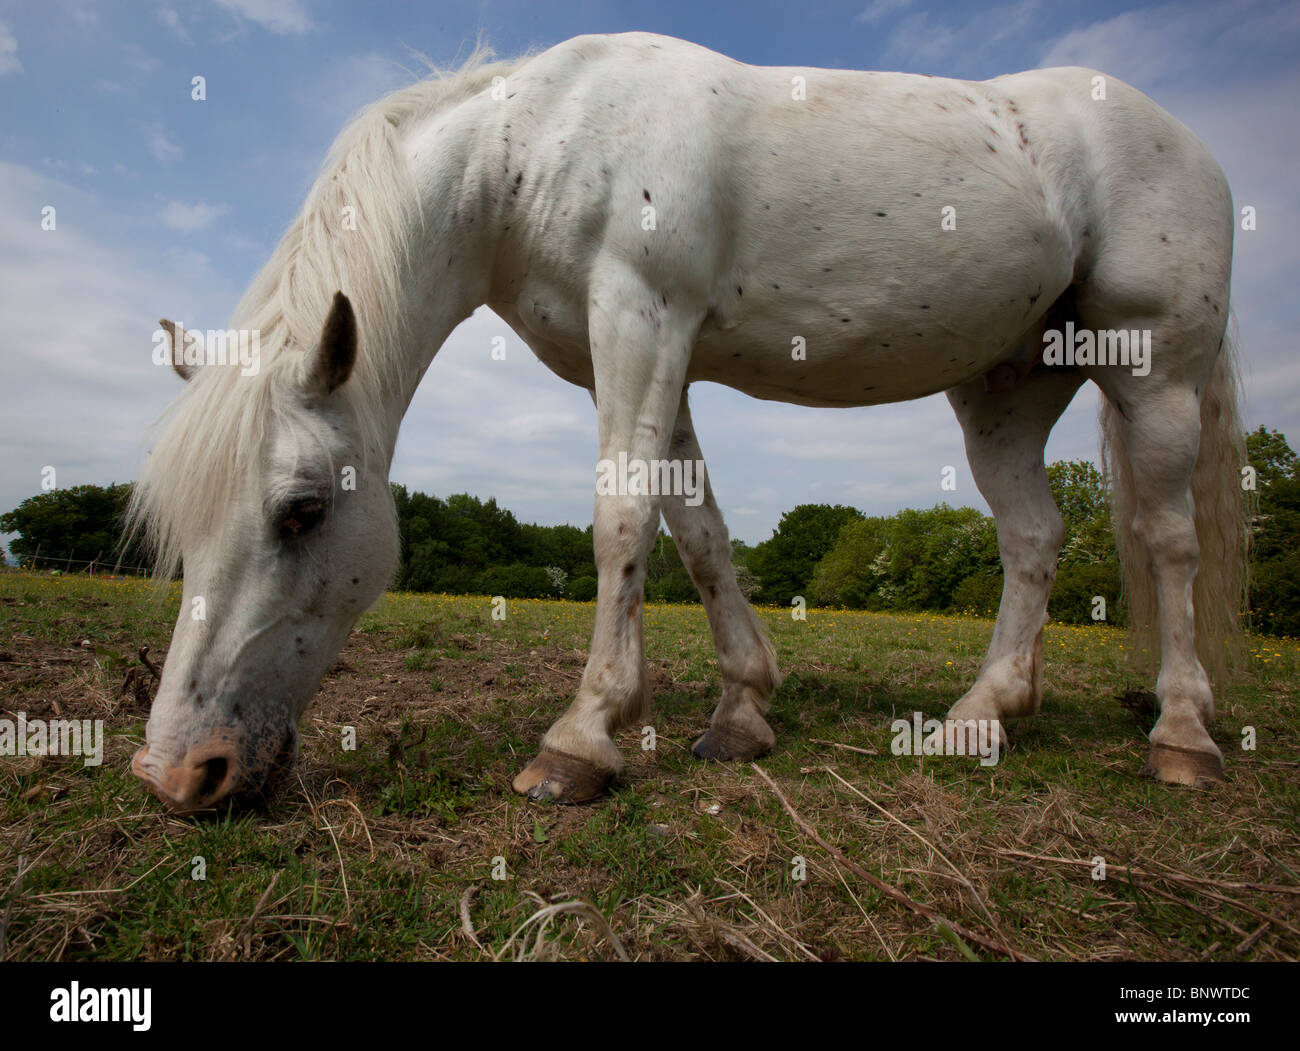 A pony or small horse grazing in a field with a background of trees and a predominantly blue sky, seen from an unusual - Stock Image